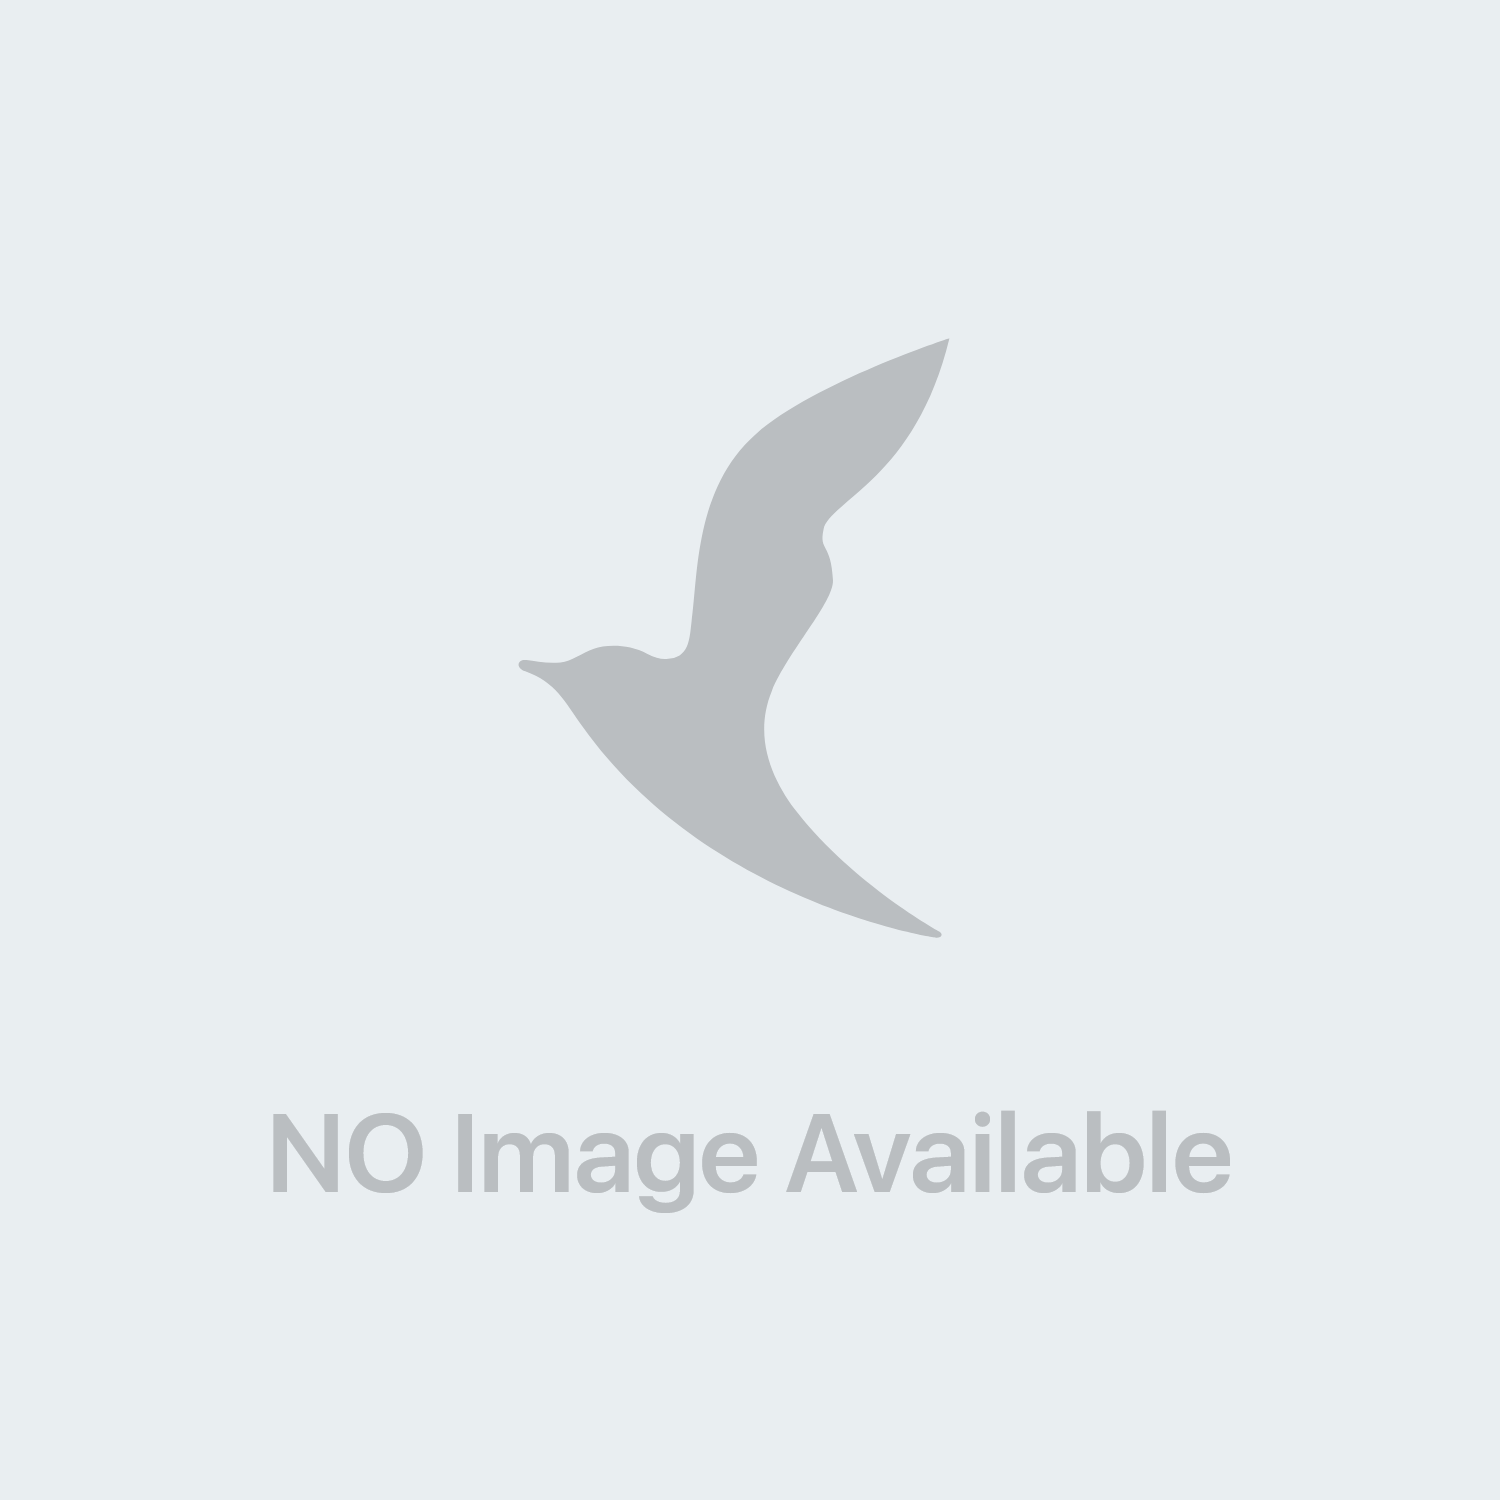 Valontan 4 Compresse Rivestite 100 mg